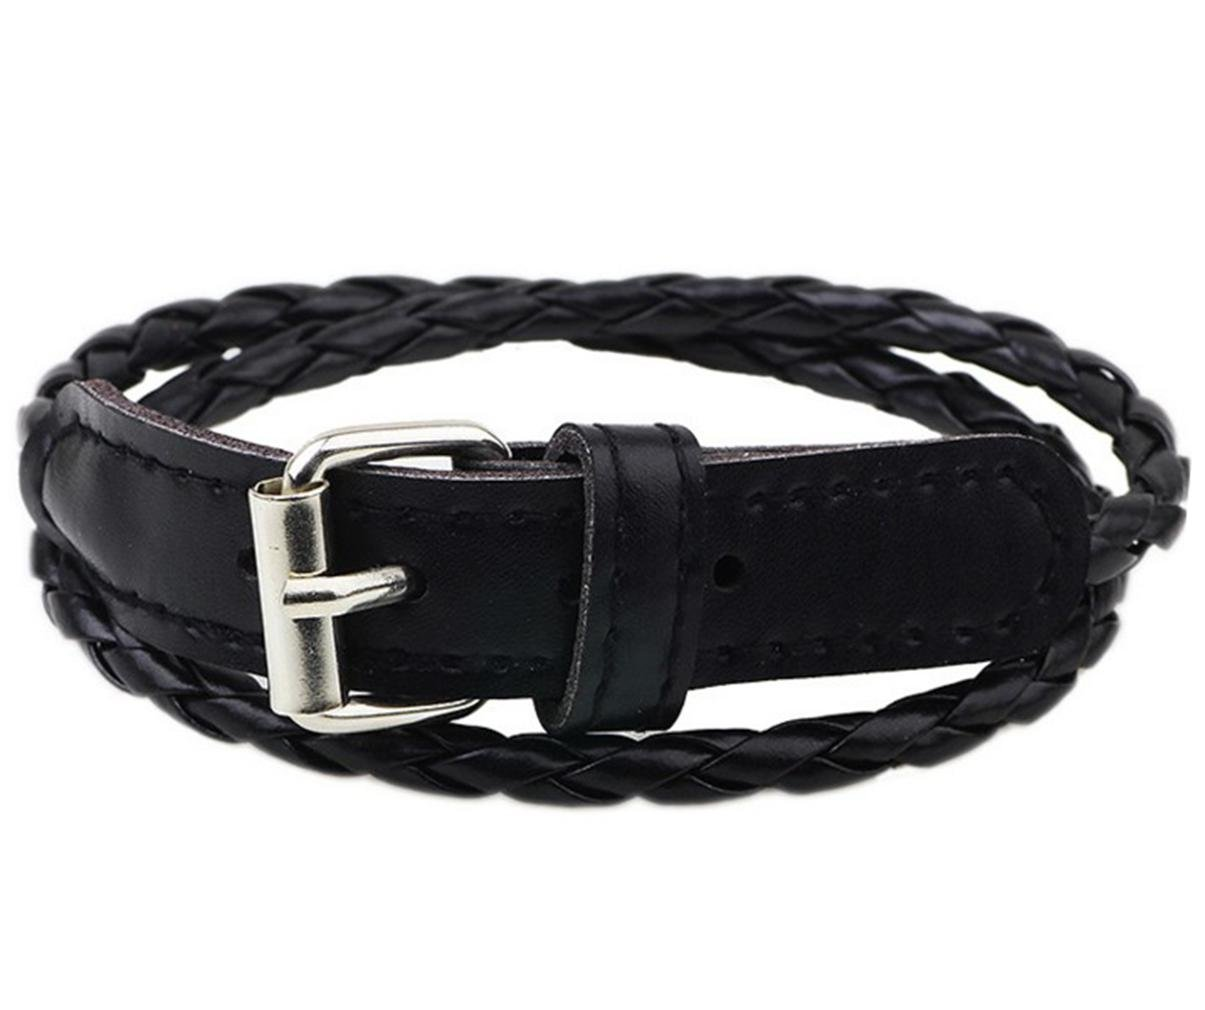 XIEXIE Bracelet/Leather Alloy / Leather Wedding / Party / Daily / Casual Jewelry Gift 1pc , black